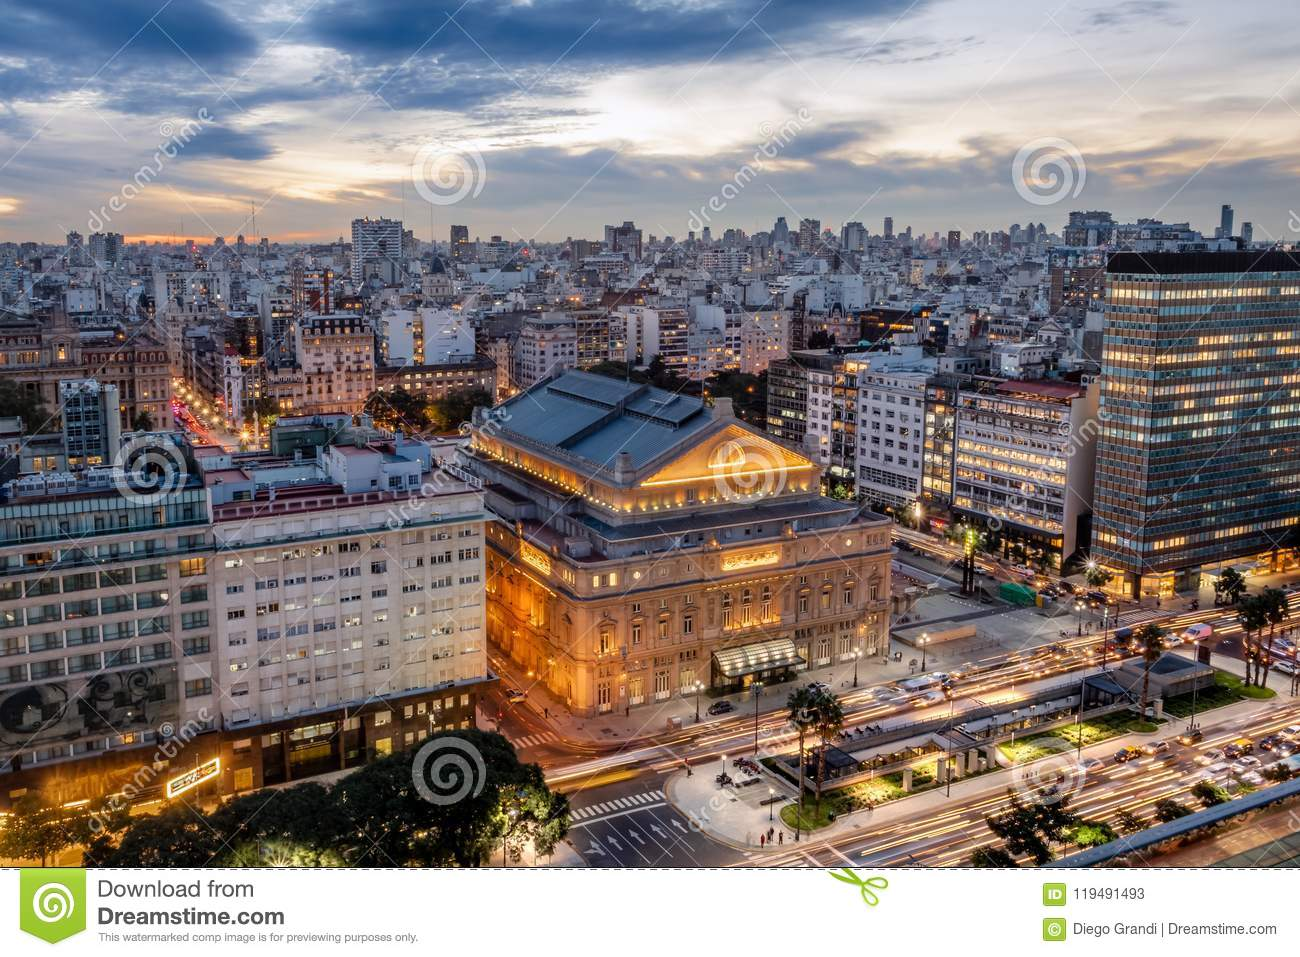 Aerial view of Teatro Colon Columbus Theatre and 9 de Julio Avenue at sunset - Buenos Aires, Argentina